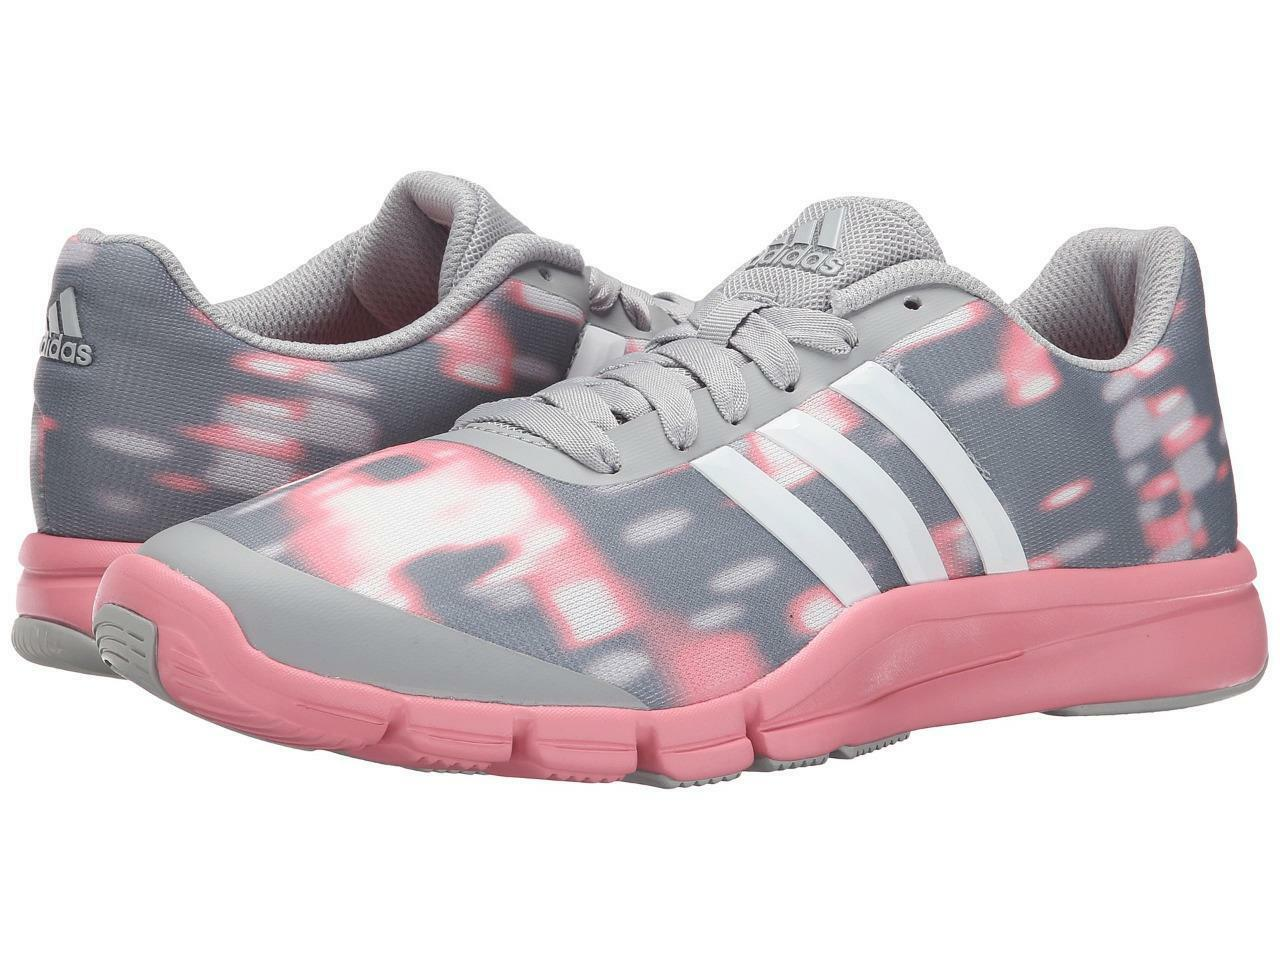 Adidas Trainer Women's A.T 360.2 Prima Cross Trainer Adidas Shoe Various Colors/Sizes NIB 9cbb6b